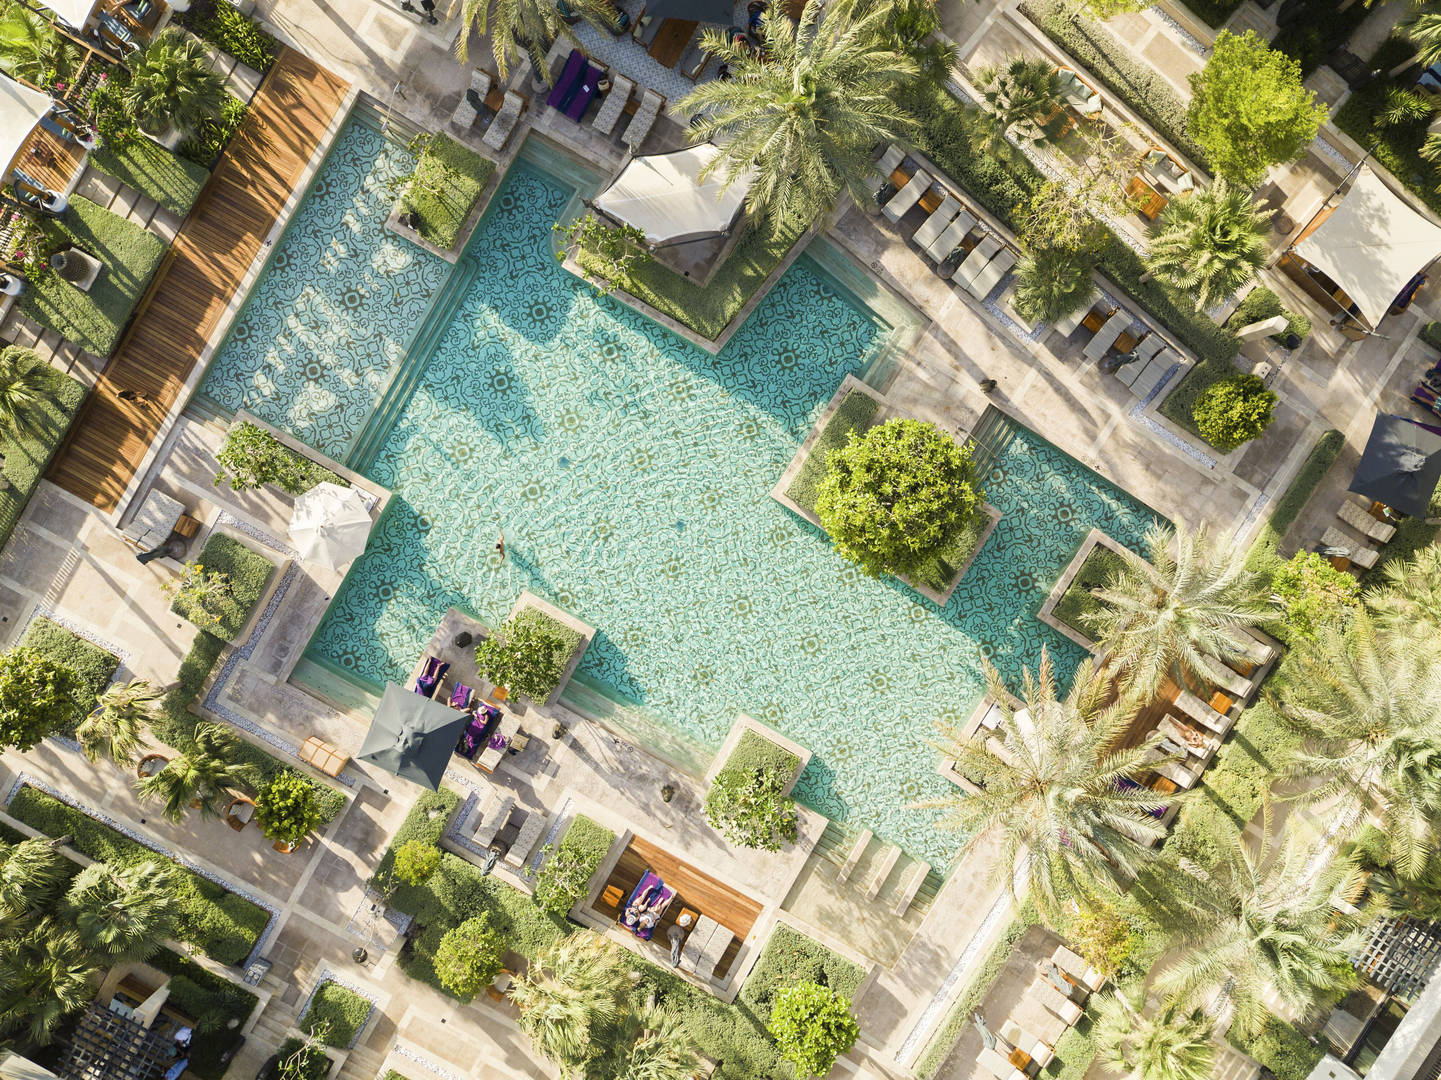 Aerial view of Jumeirah Al Naseem's pools